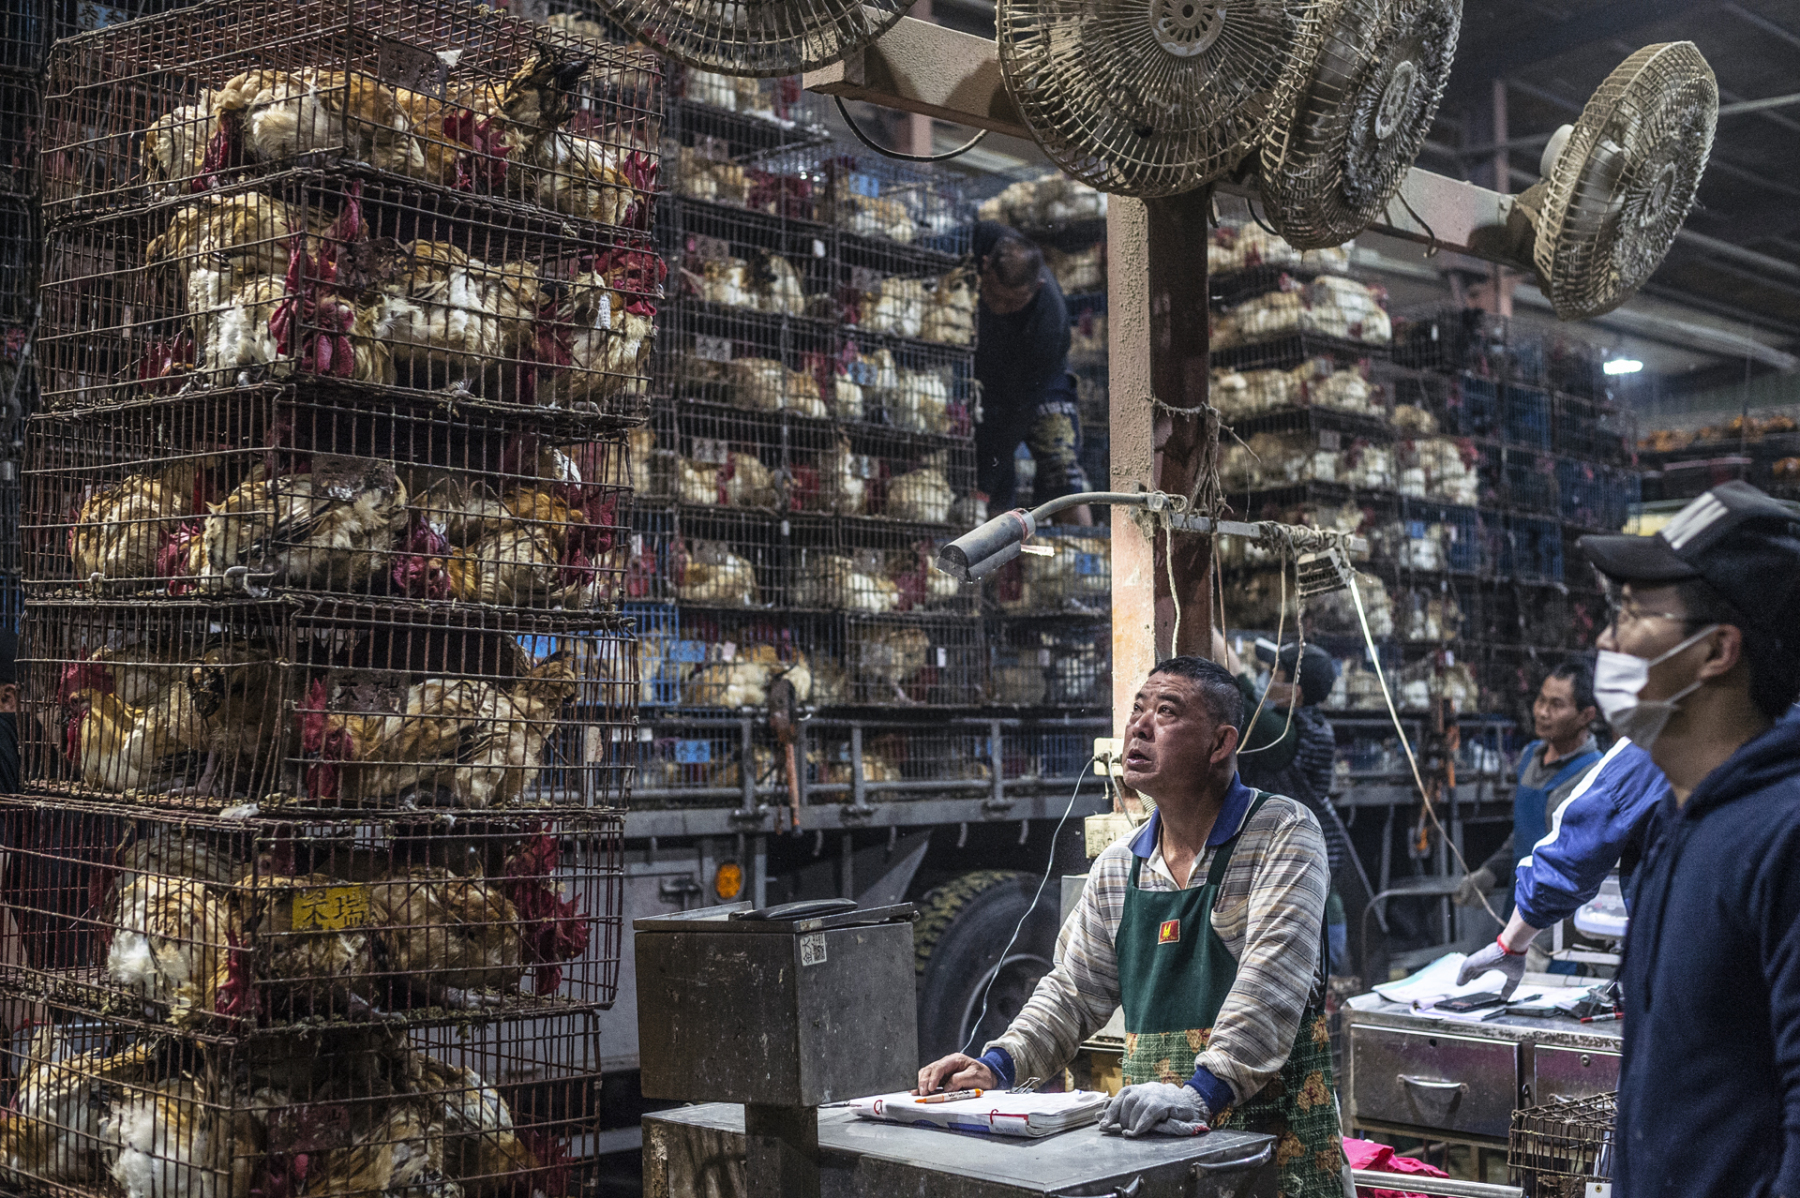 In this busy poultry slaughterhouse, tens of thousands of chickens are processed in a single night. Taiwan. Jo-Anne McArthur